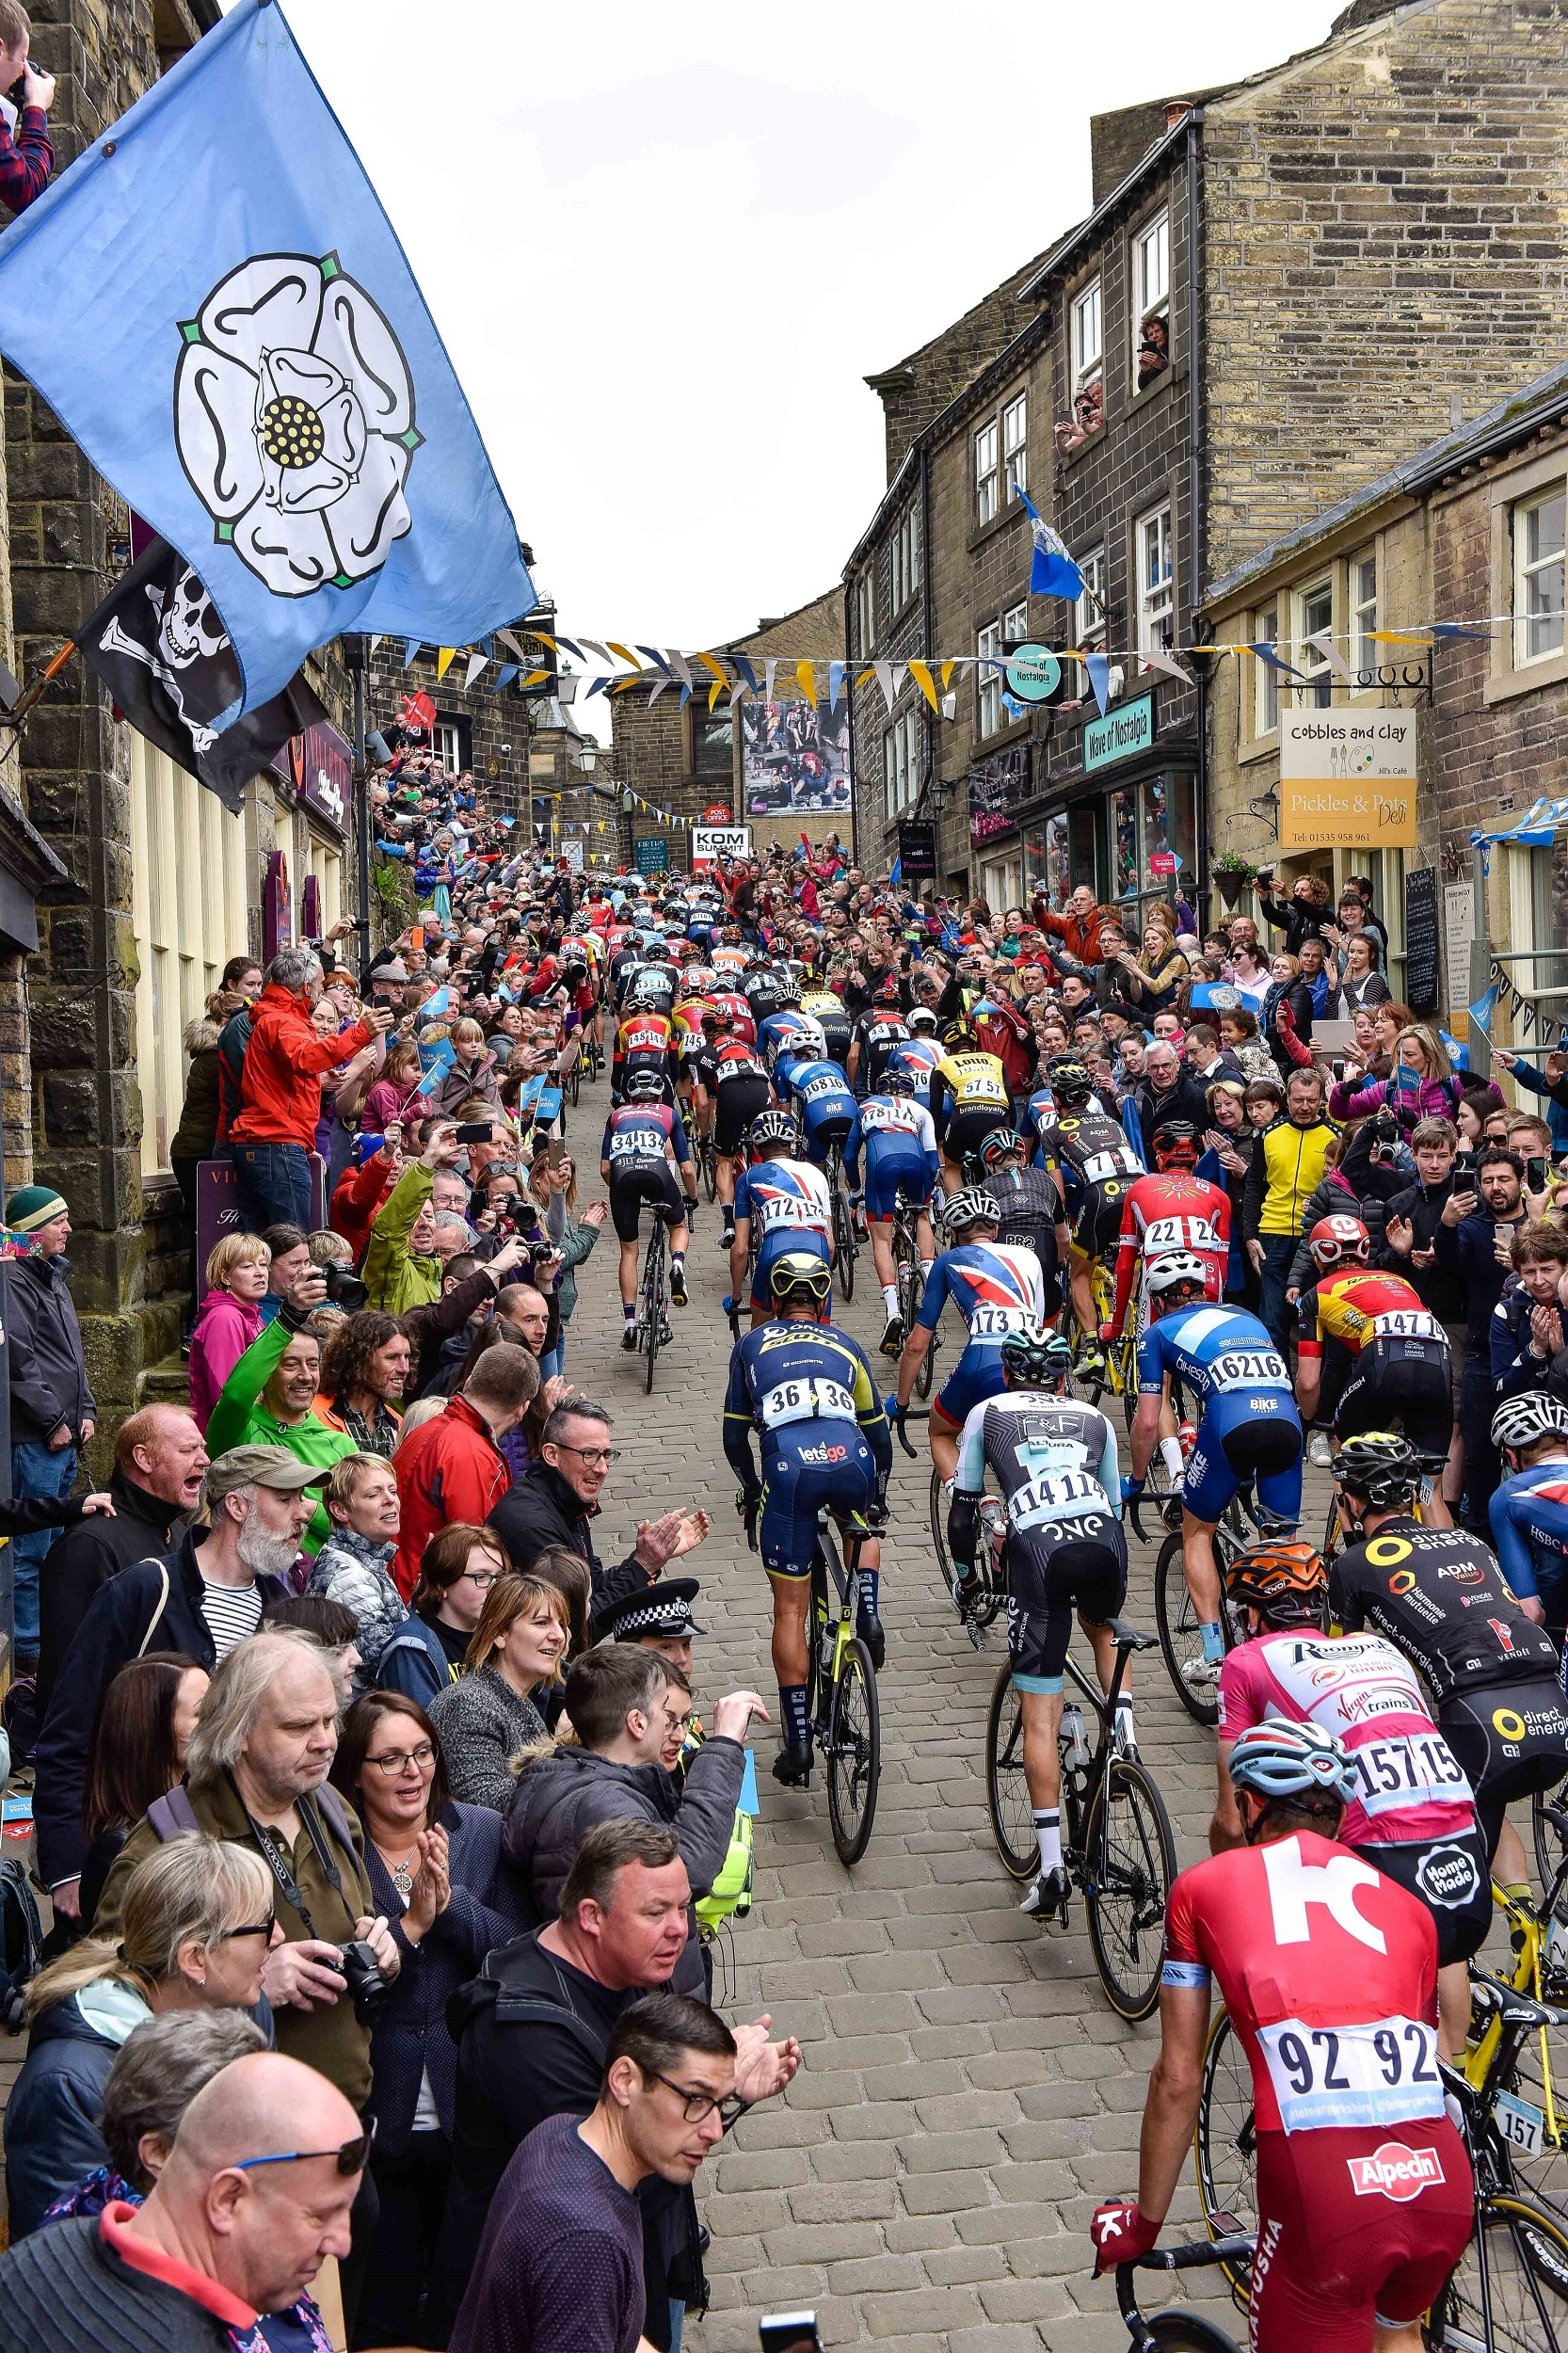 Tens of thousands of people across the district lined the streets to cheer on riders in the Tour de Yorkshire.